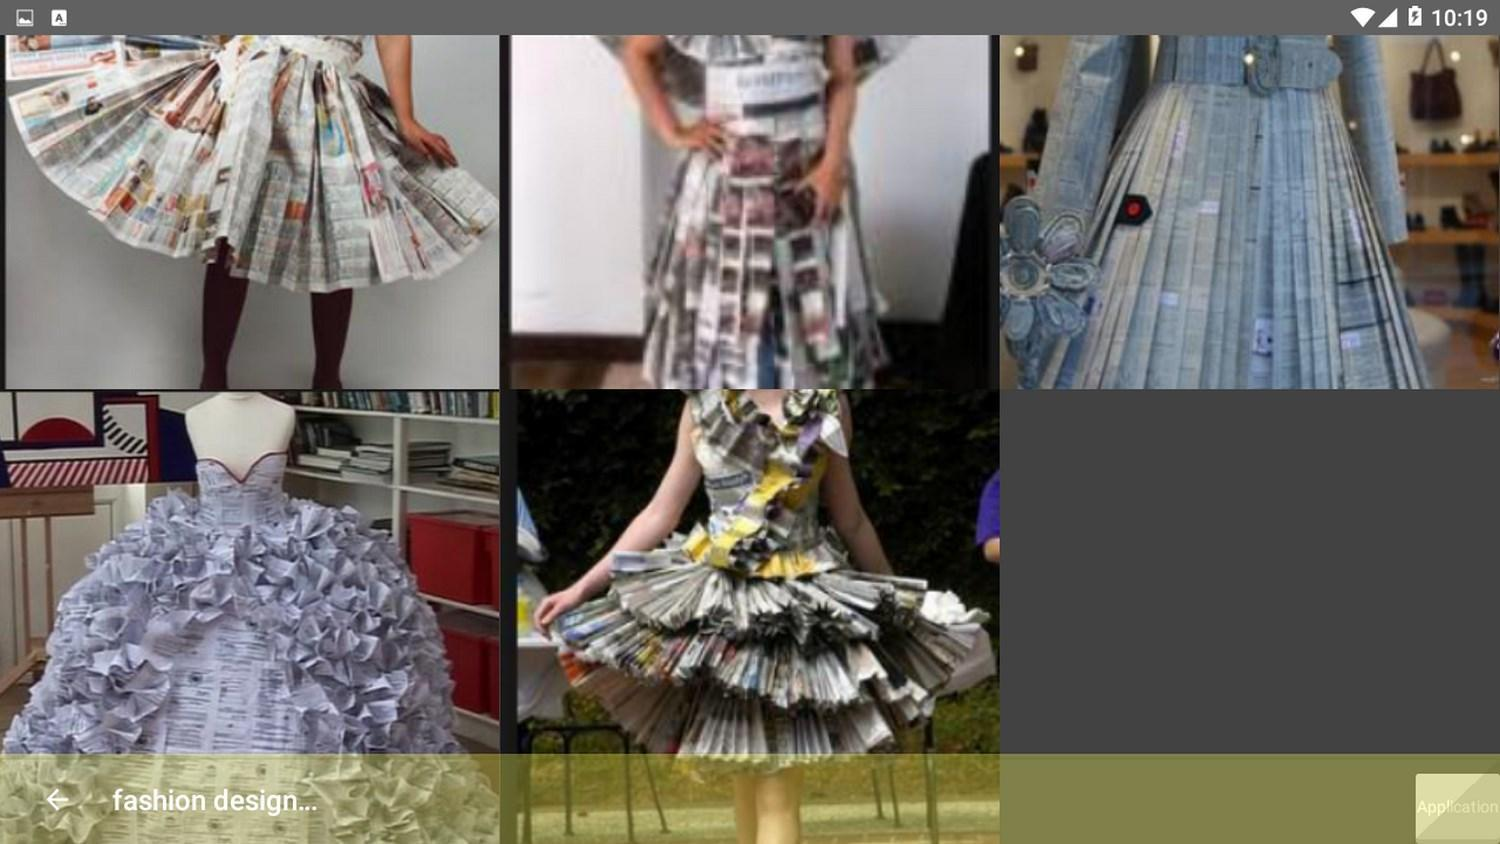 Fashion Design From The Newspaper For Android Apk Download